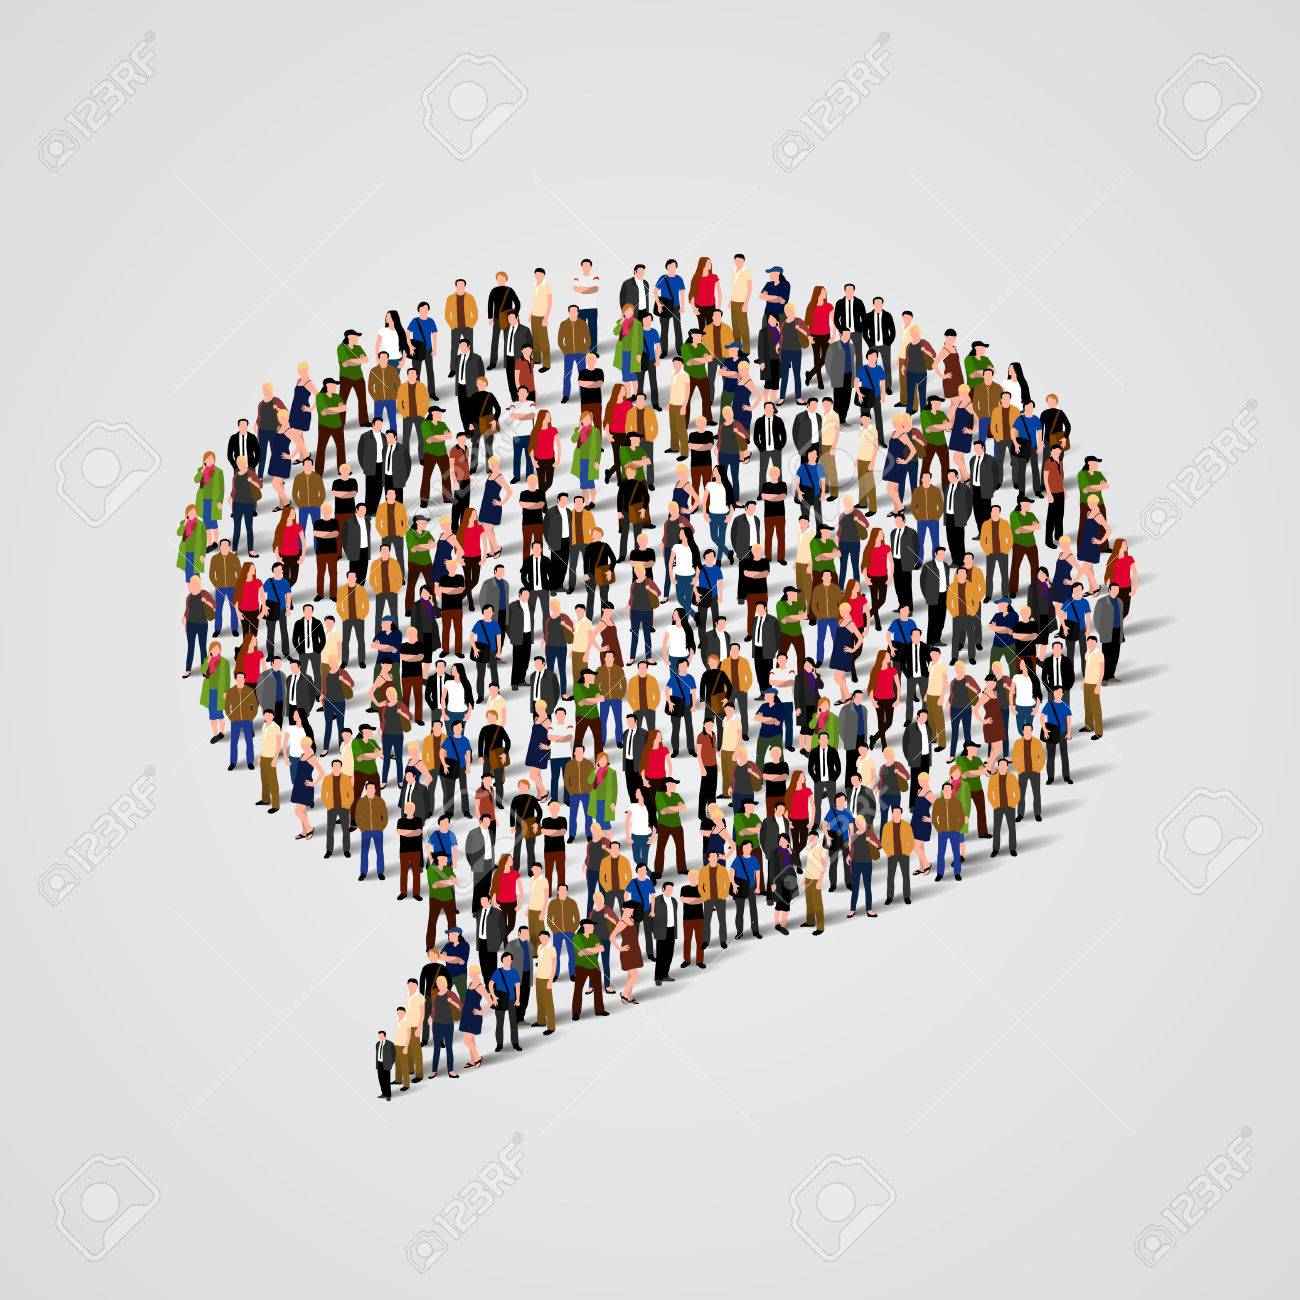 Large group of people in the chat bubble shape. Vector illustration Standard-Bild - 46955220